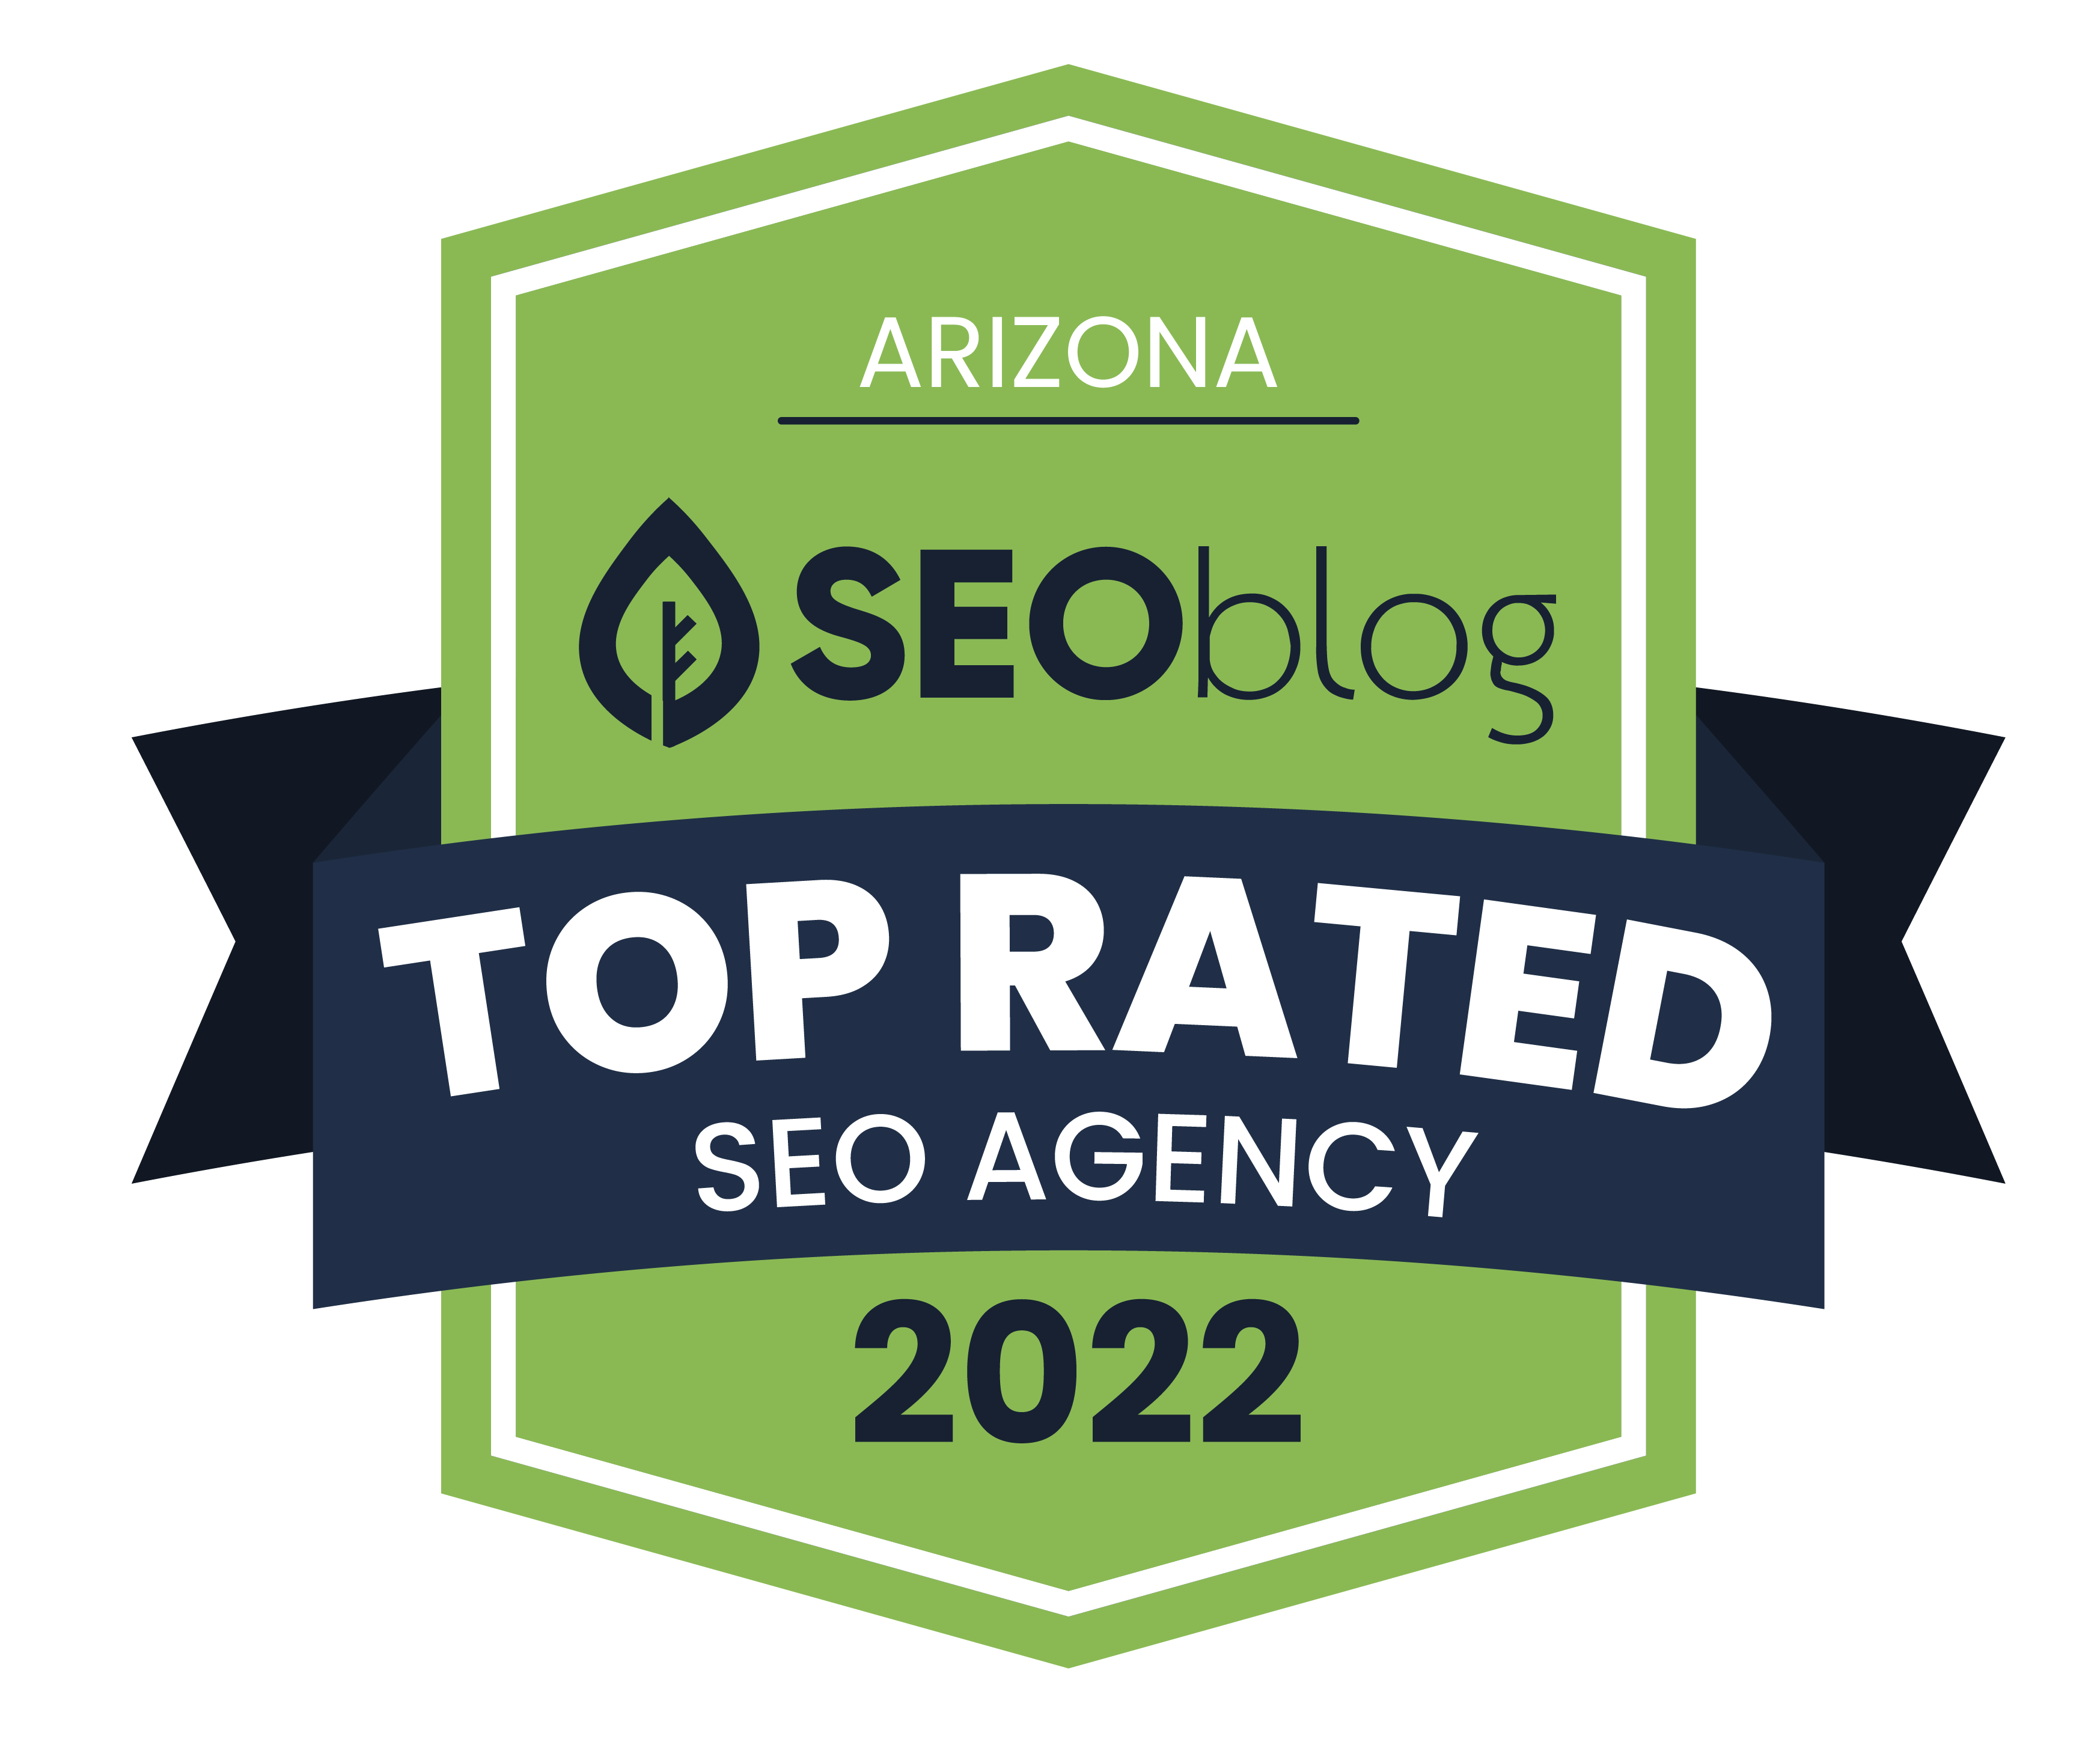 Arizona SEO Agency